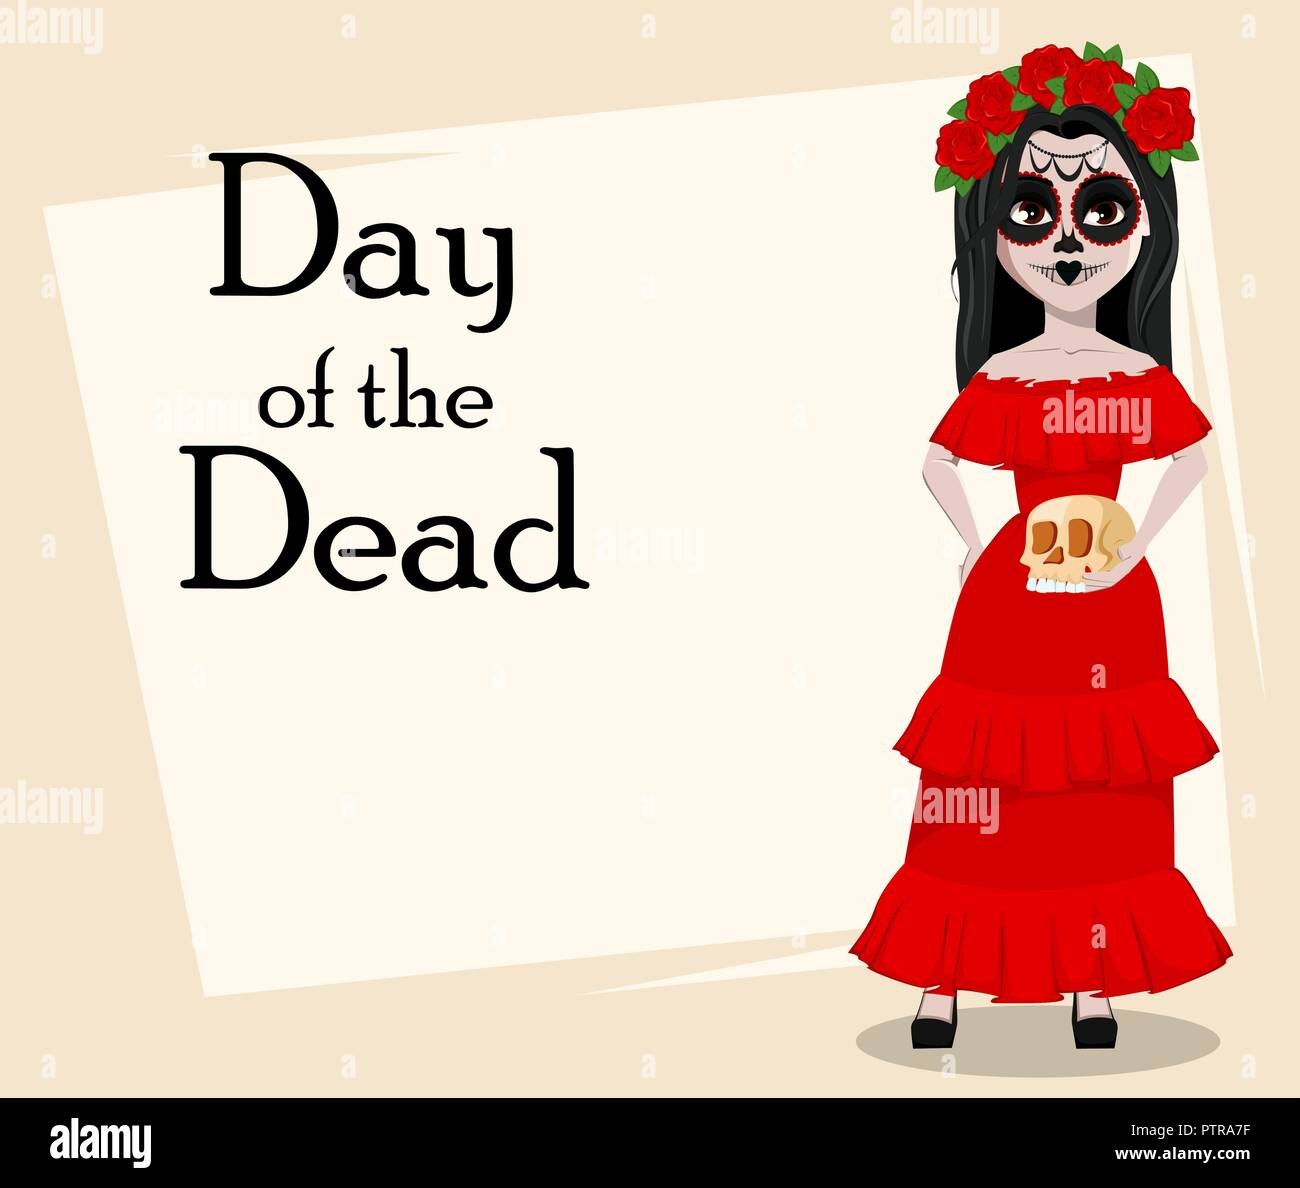 Day Of The Dead Traditional Holiday Beautiful Girl With Spooky Body Art Holding Skull Vector Illustration Usable For Greeting Card Poster Flyer Stock Vector Image Art Alamy